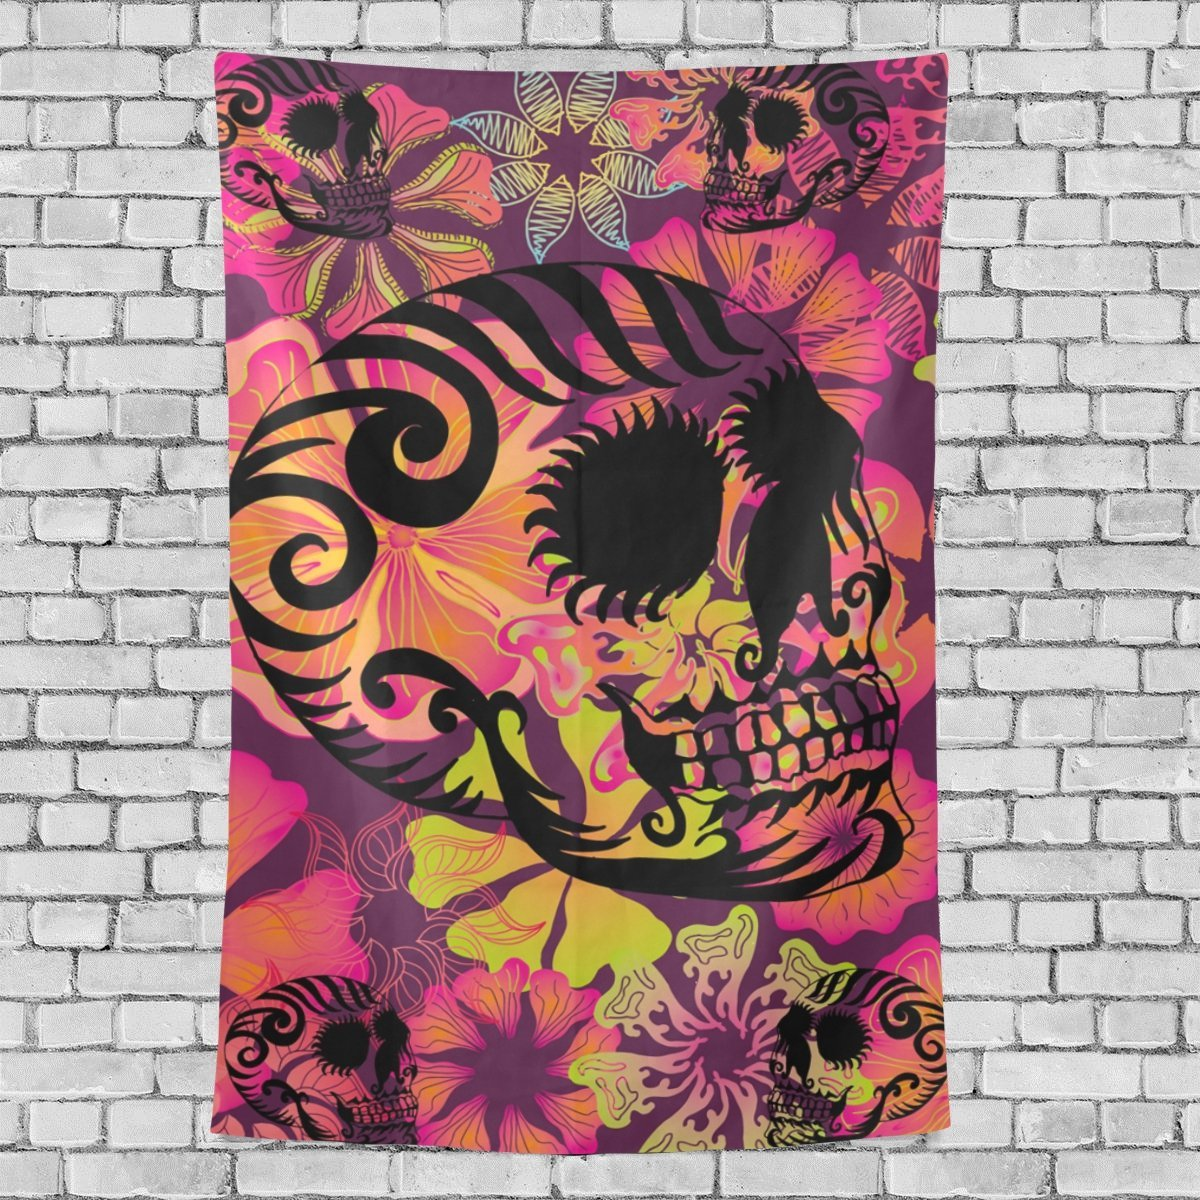 MYPOP Skull Flower Tapestry Wall Decor Living Room Dorm Tapestries DIY 90 x 60 inches